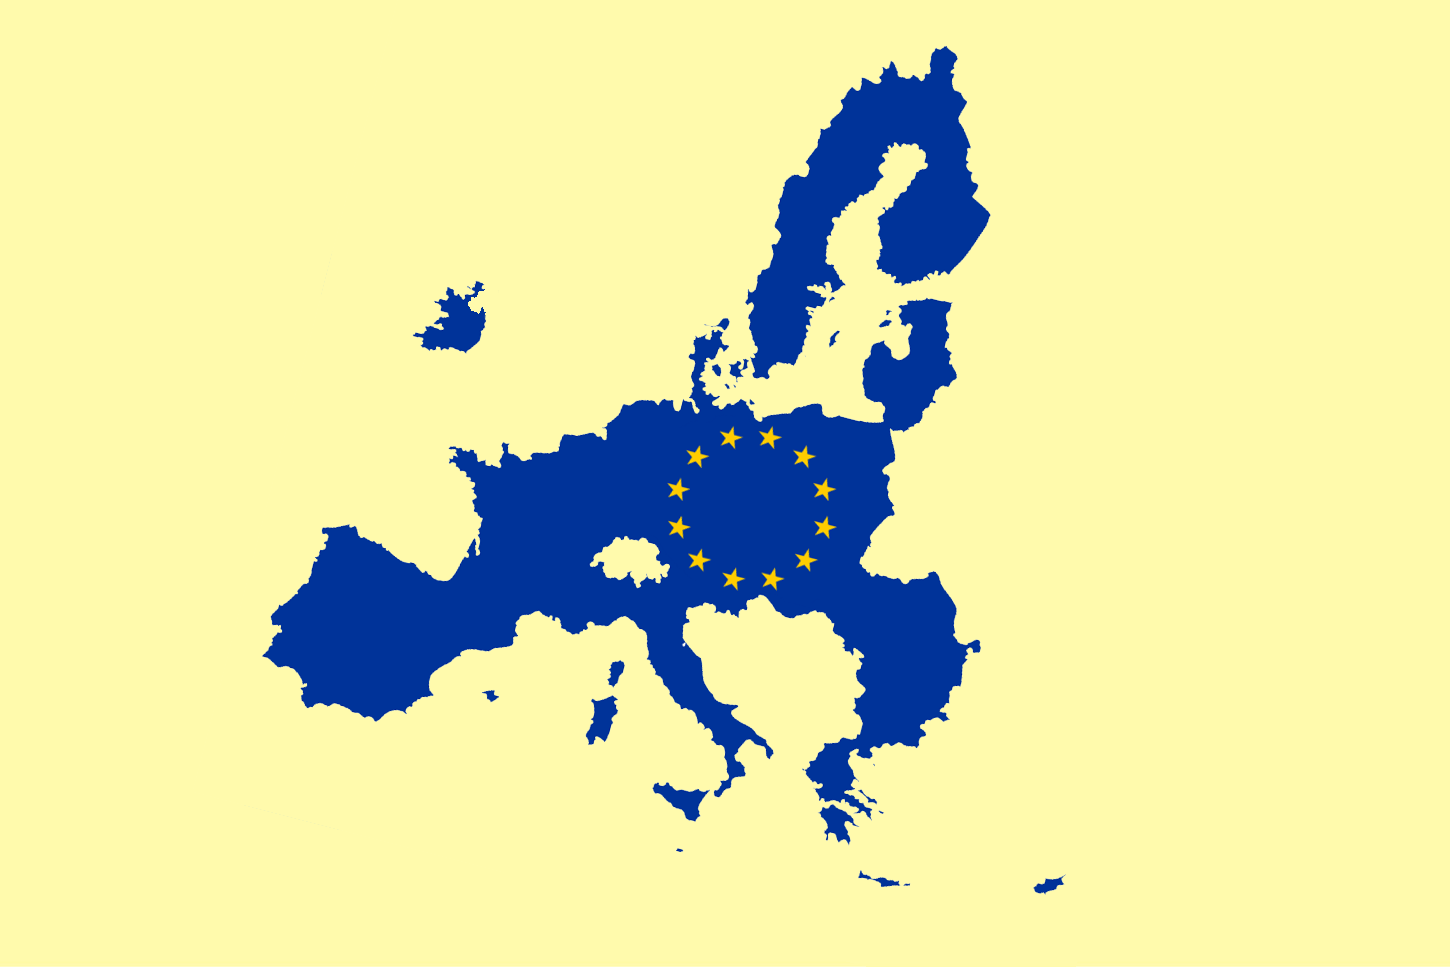 EU Map icon